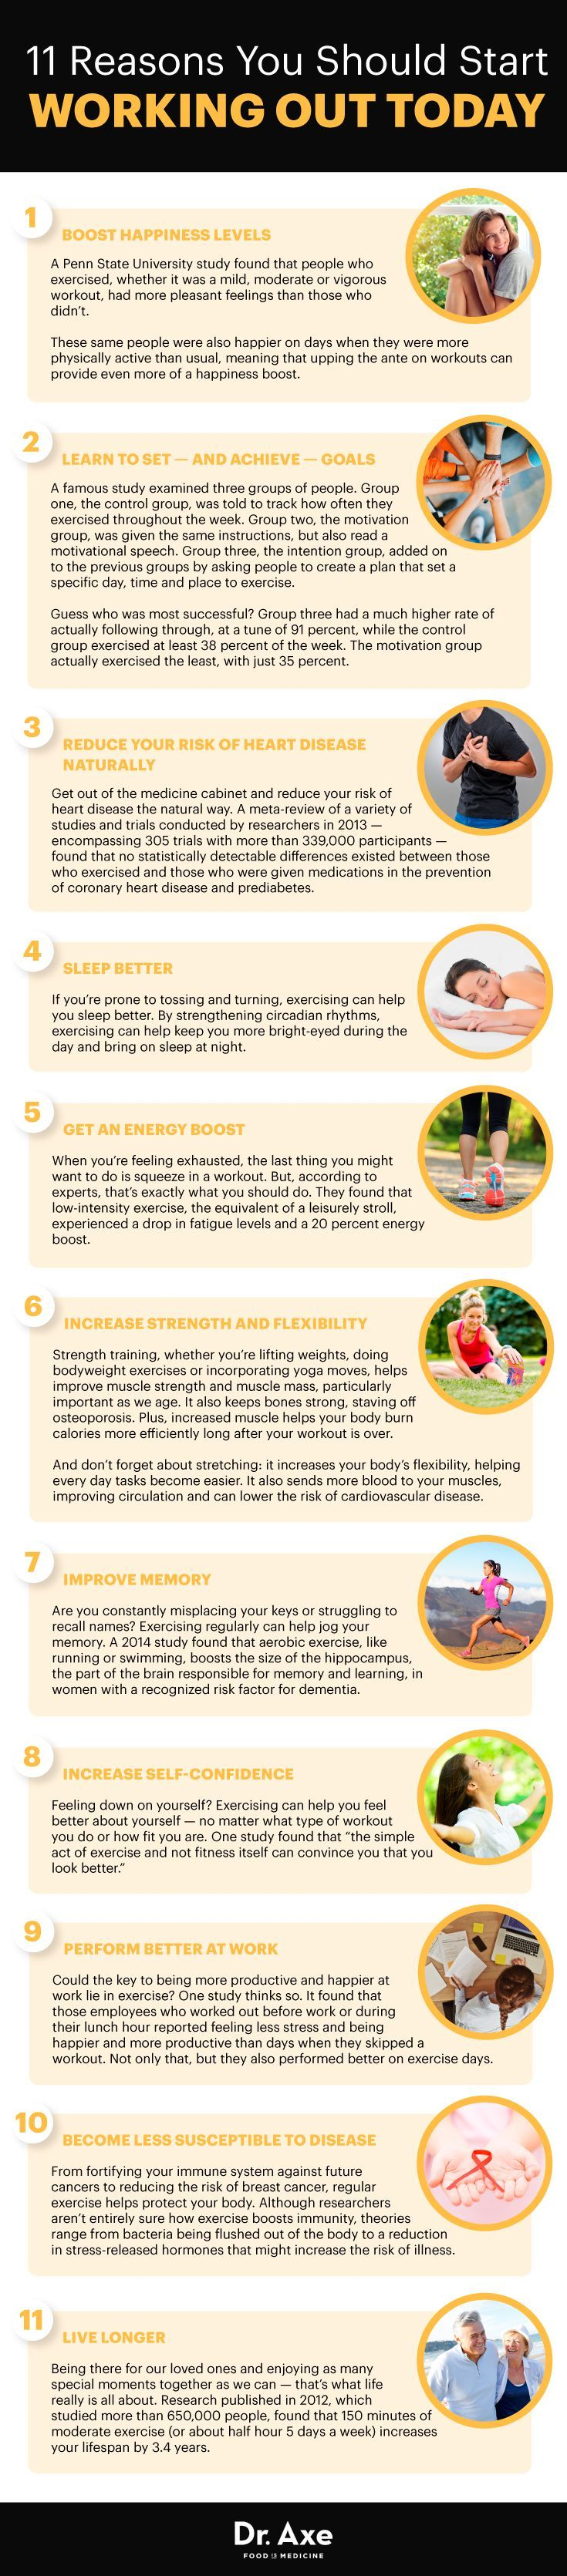 best ideas about exercise benefits benefits of 11 benefits of exercise start working out today